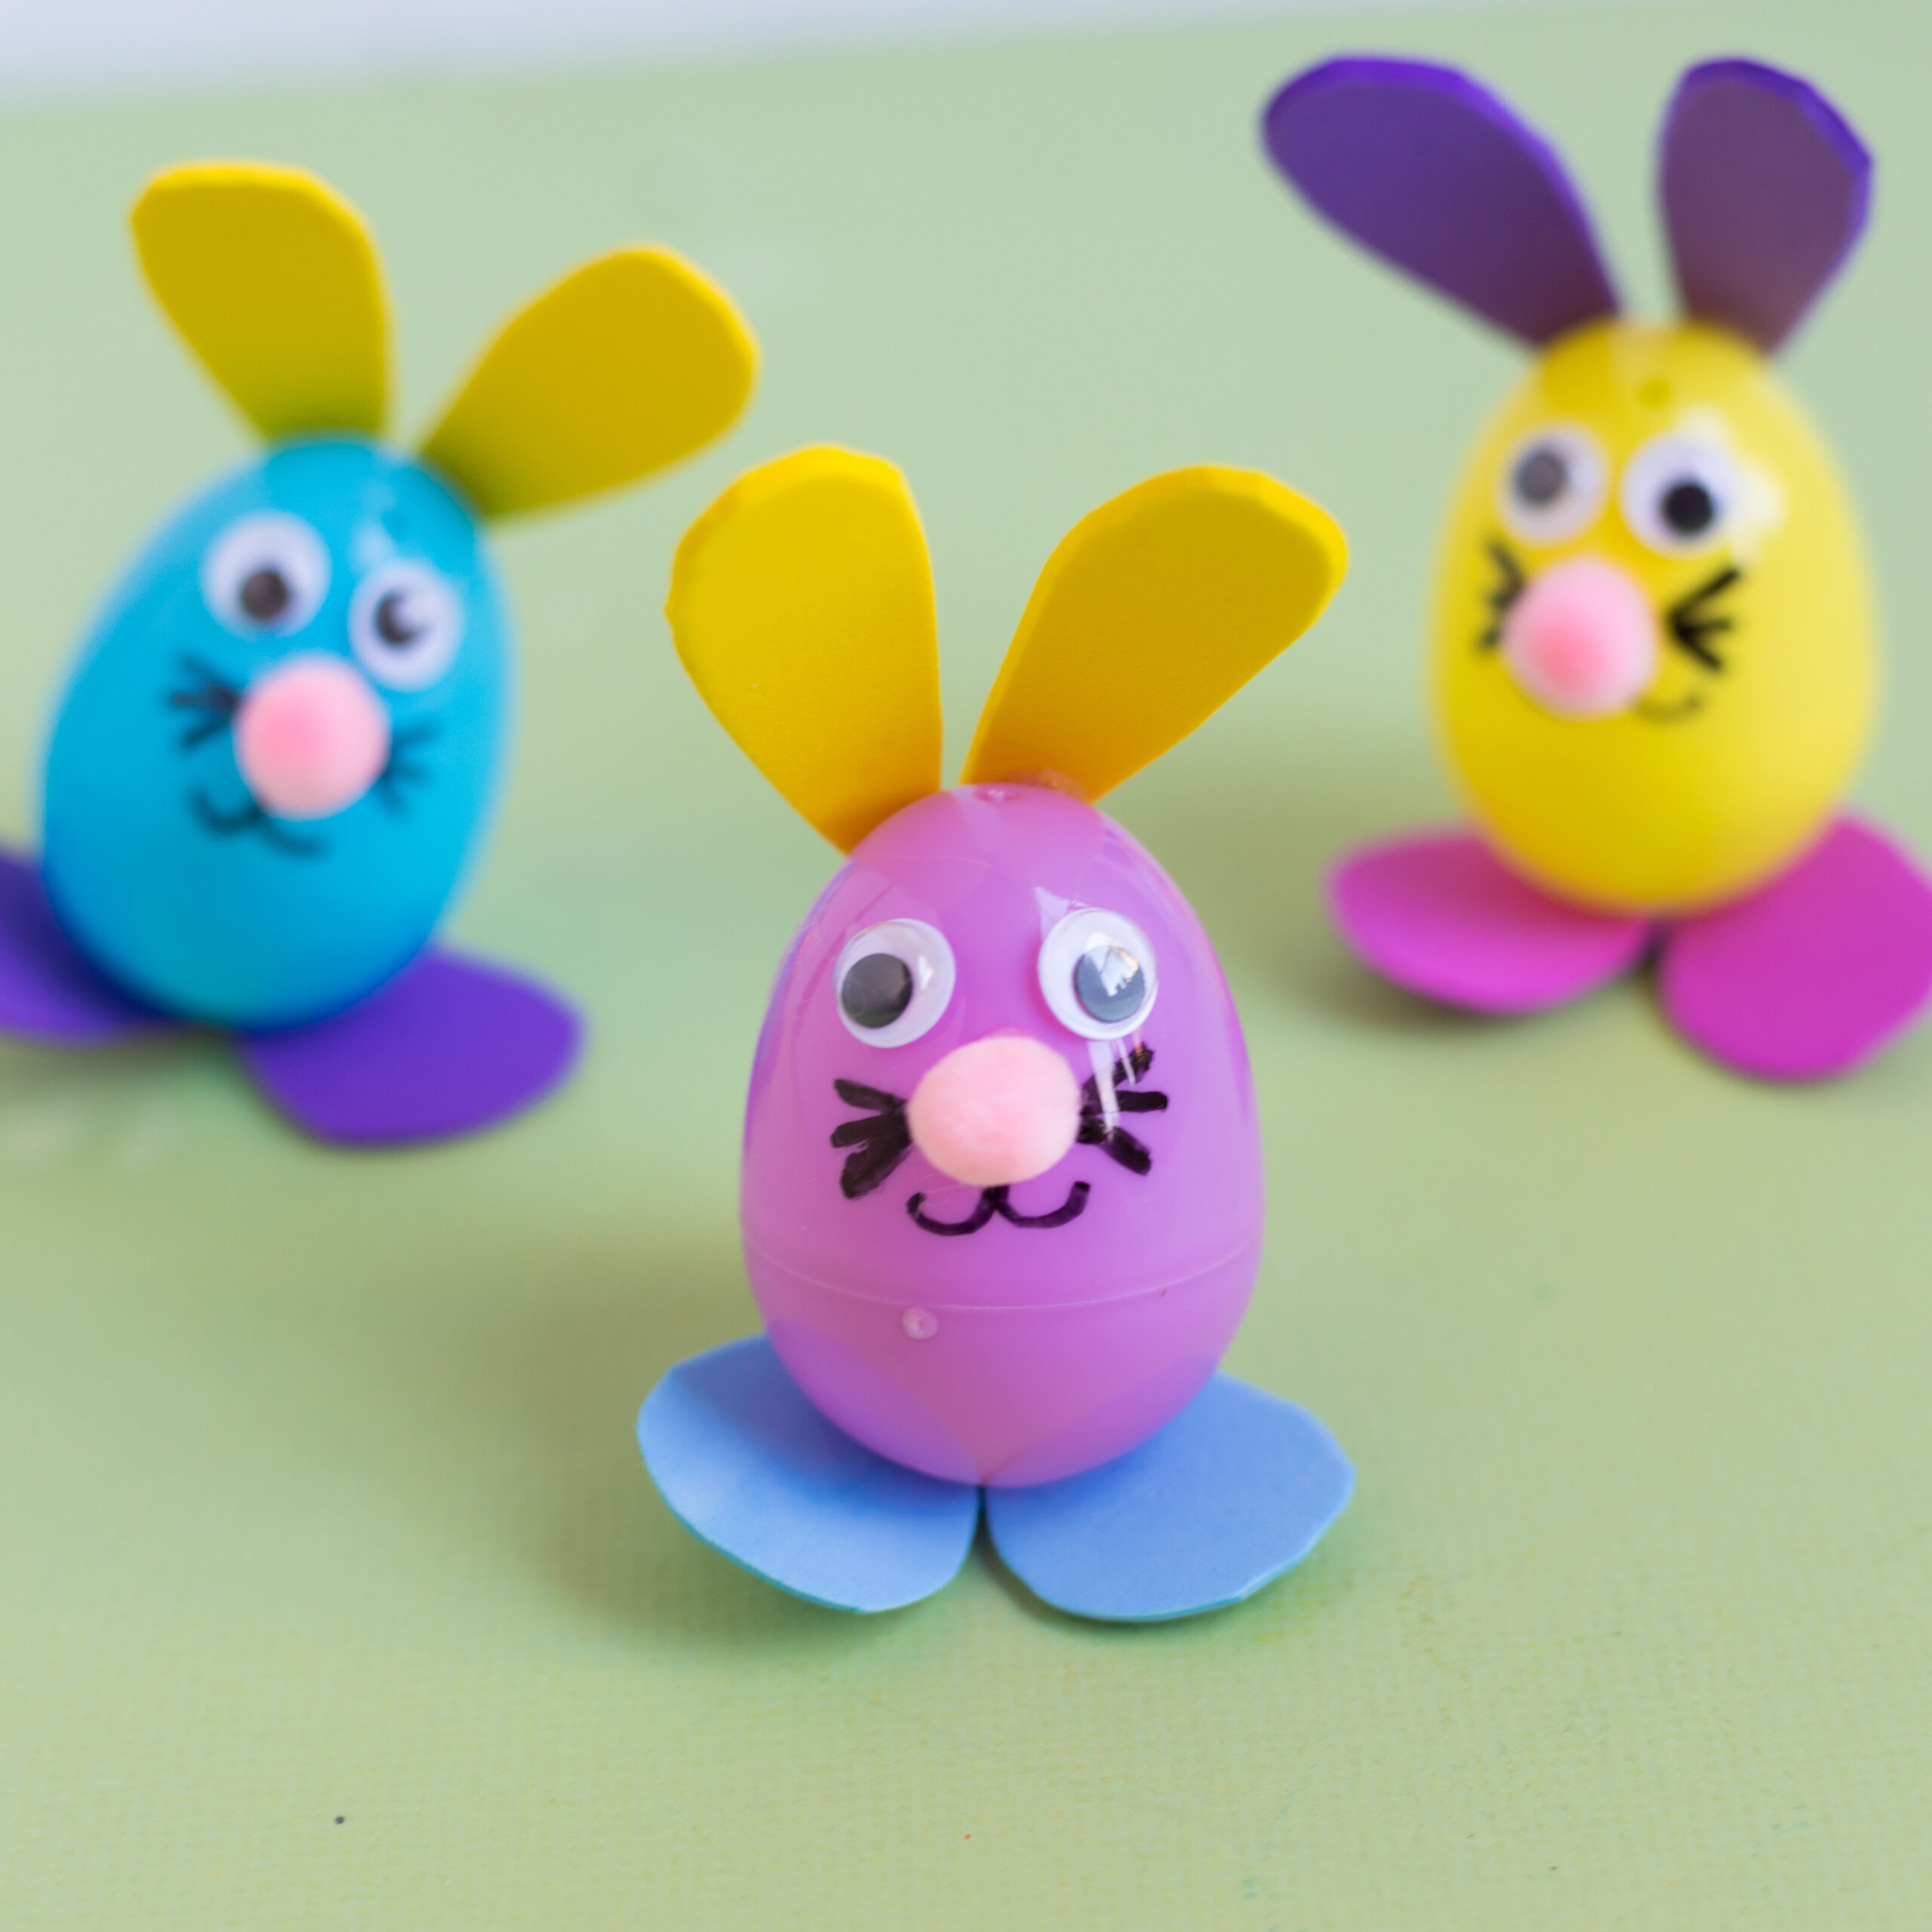 Plastic eggs decorated like Easter bunnies